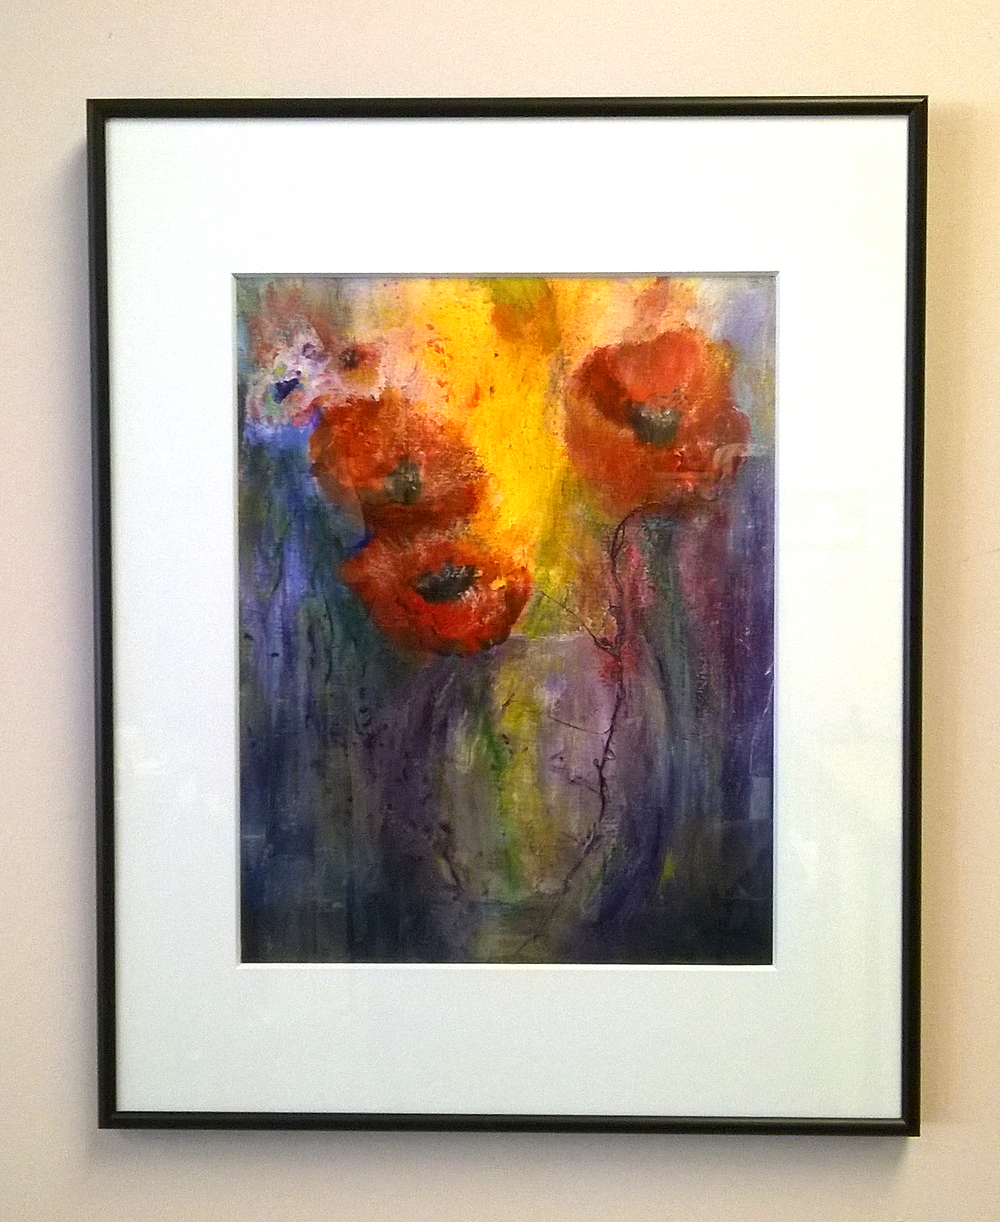 Sleek, understated elegance with a metal picture frame. Shown here is Linda Pennachio's mixed media.